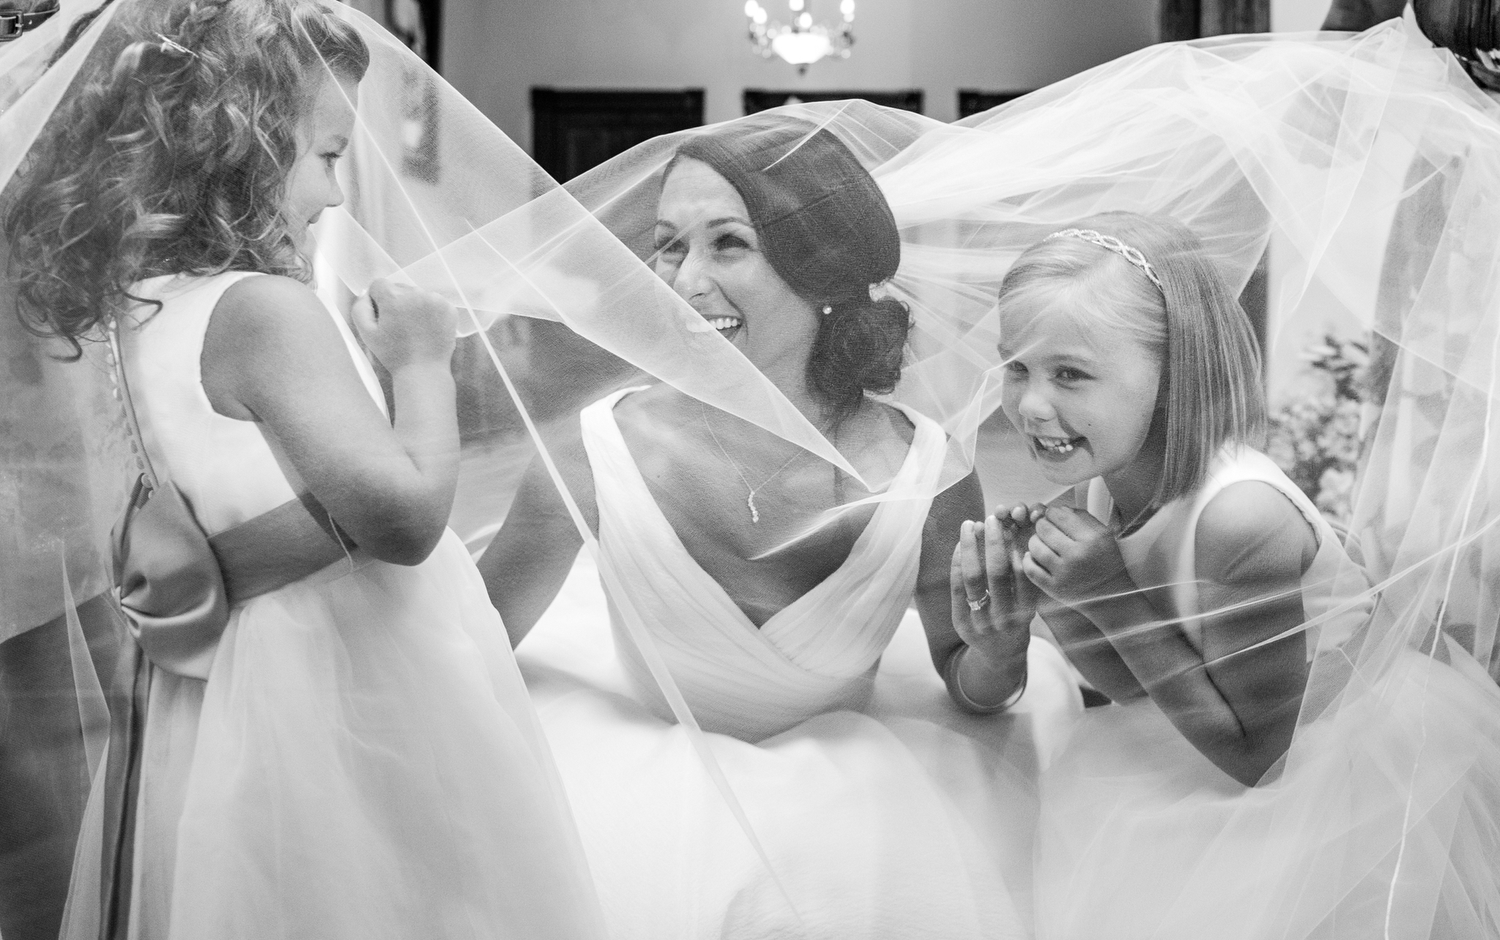 Gallery-moments-nix-weddings-05A.jpg